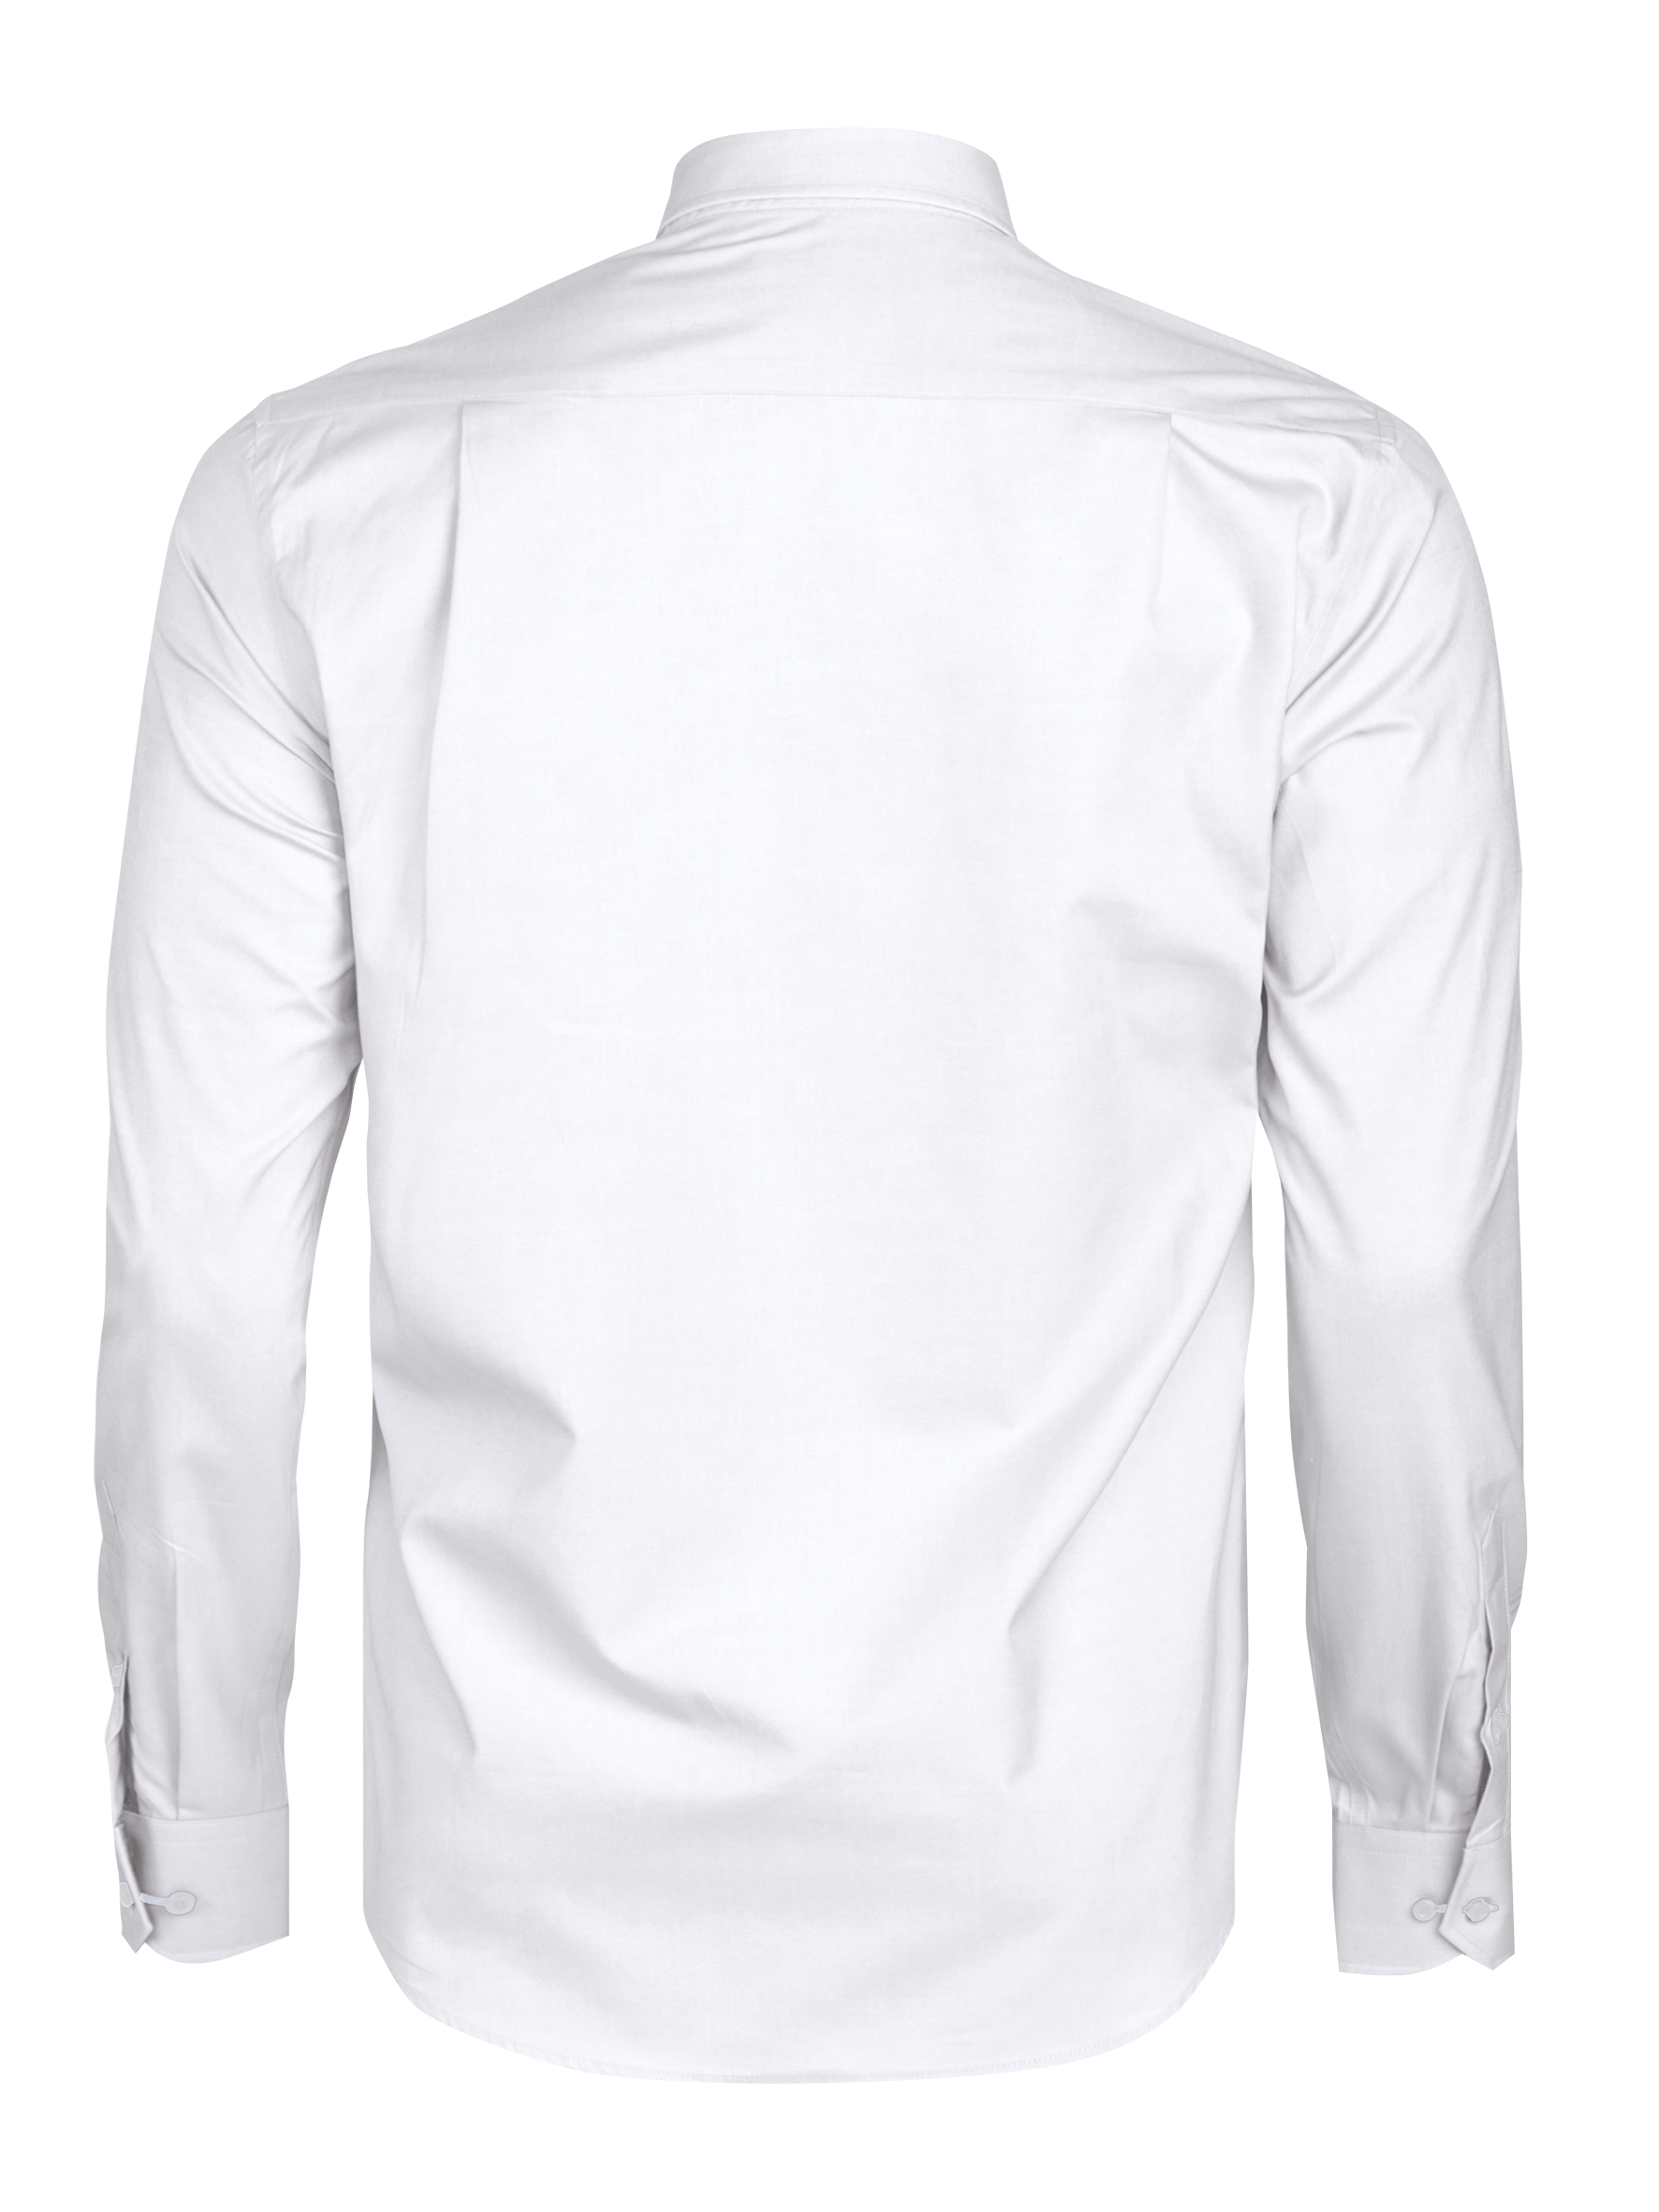 Baltimore Men 100 White (Back View)